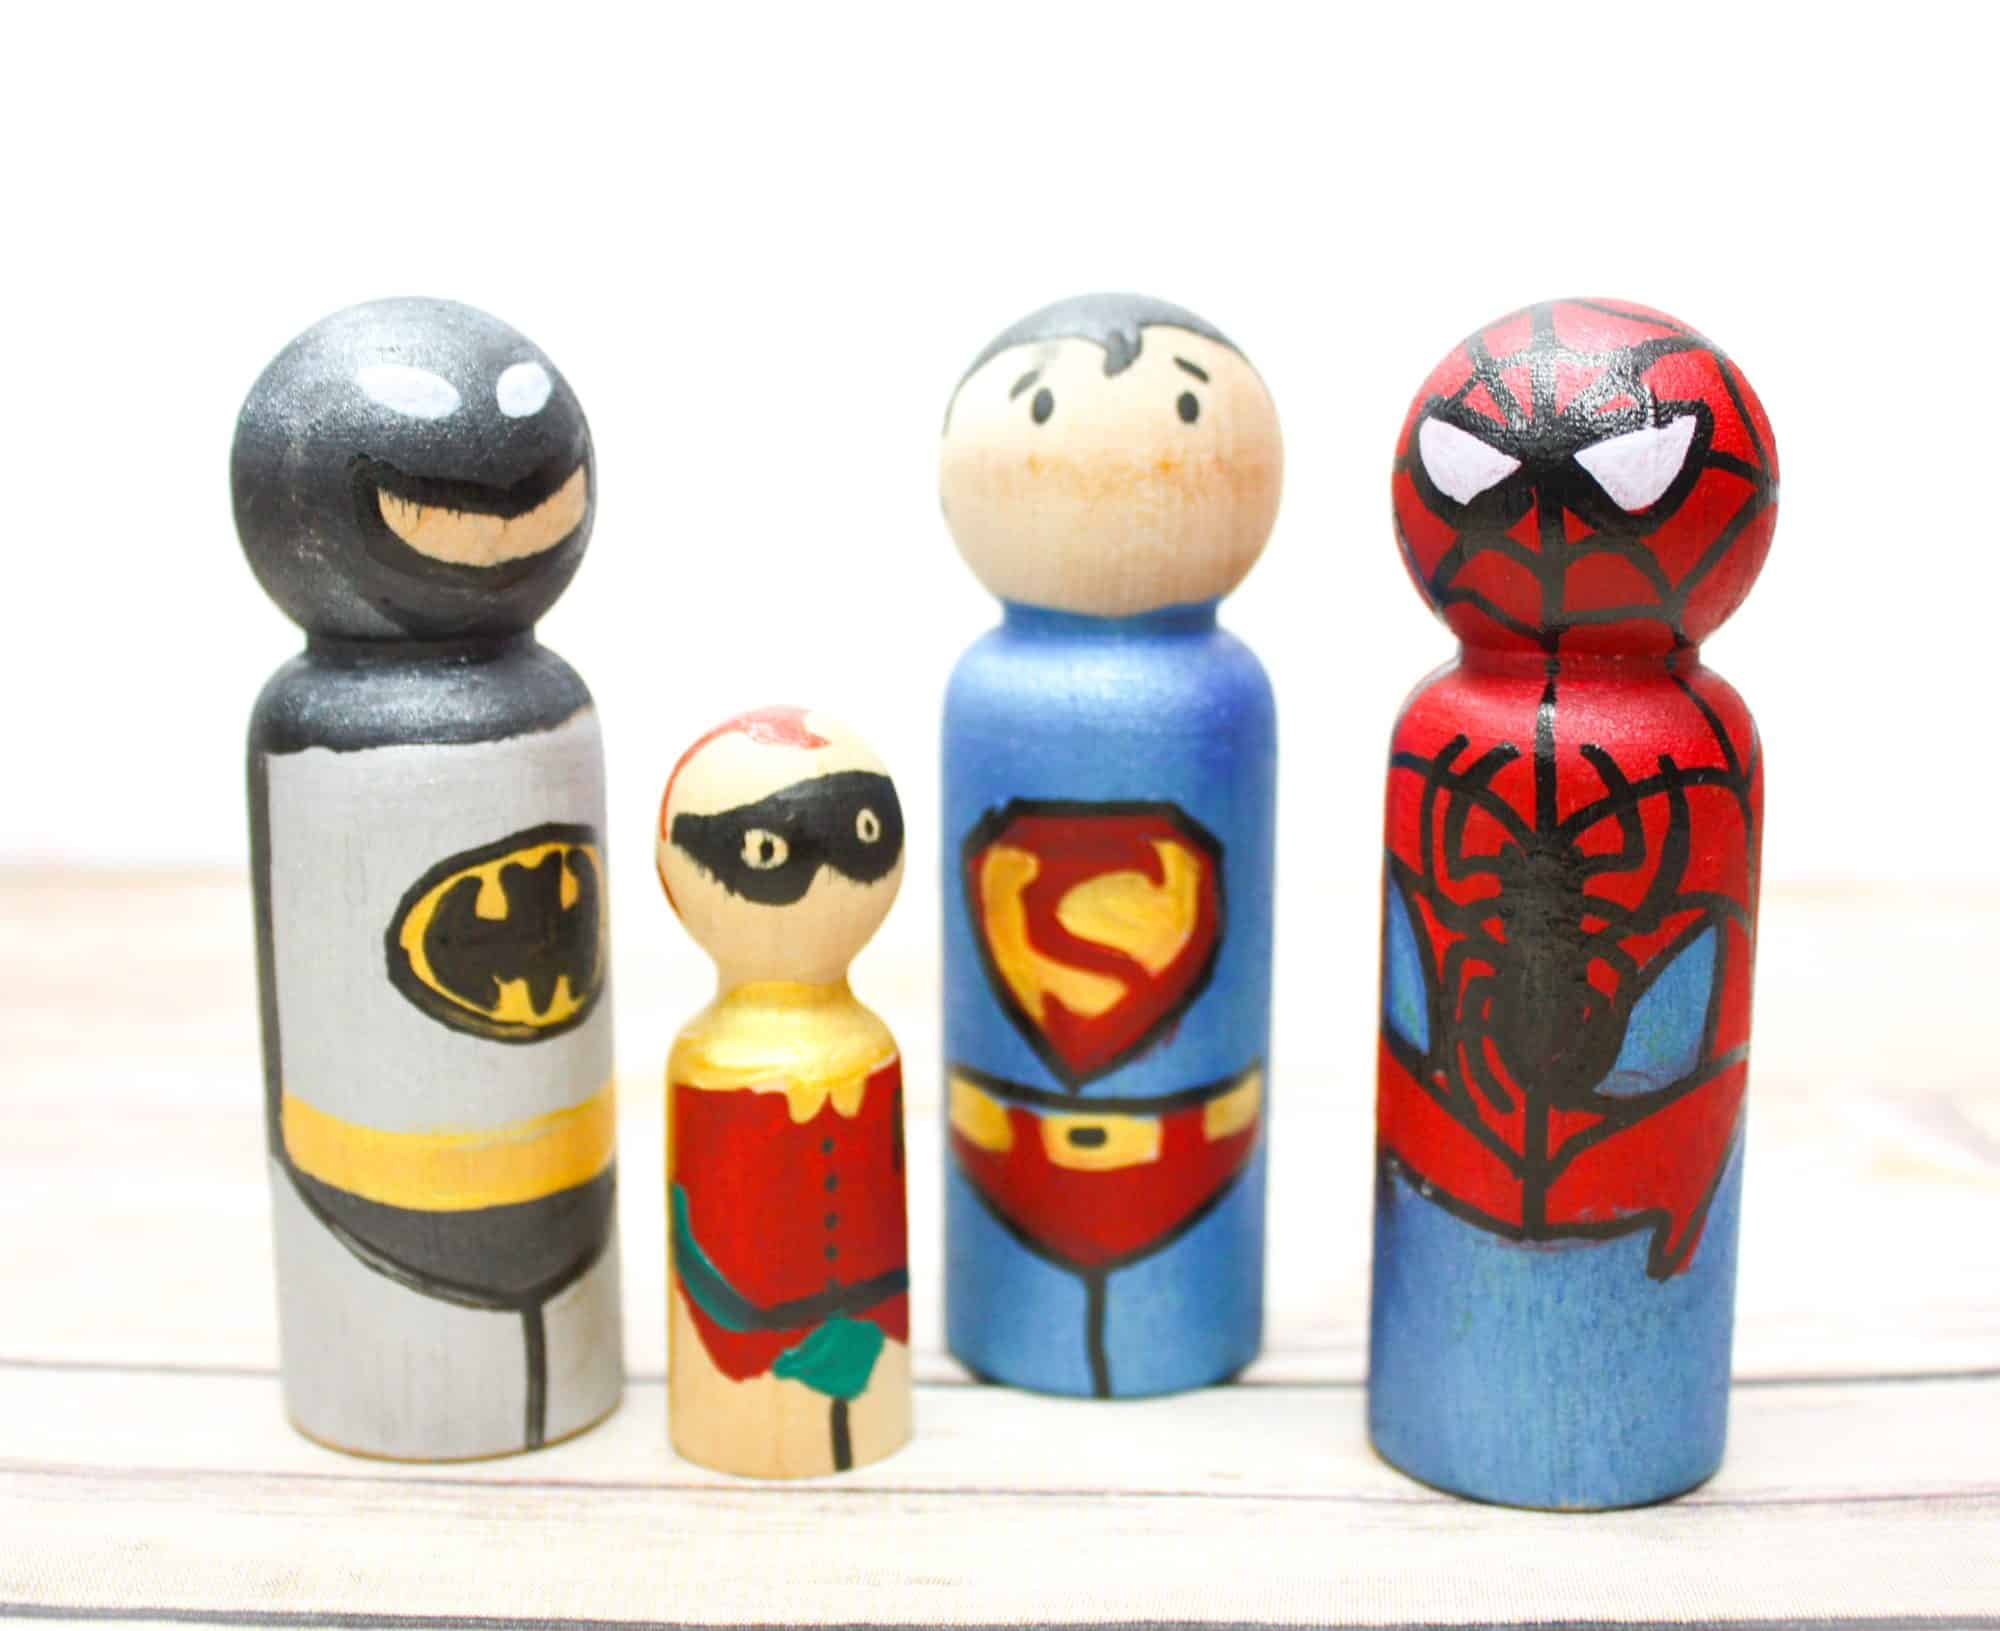 Wooden Superhero Peg Dolls: Simple DIY Toys